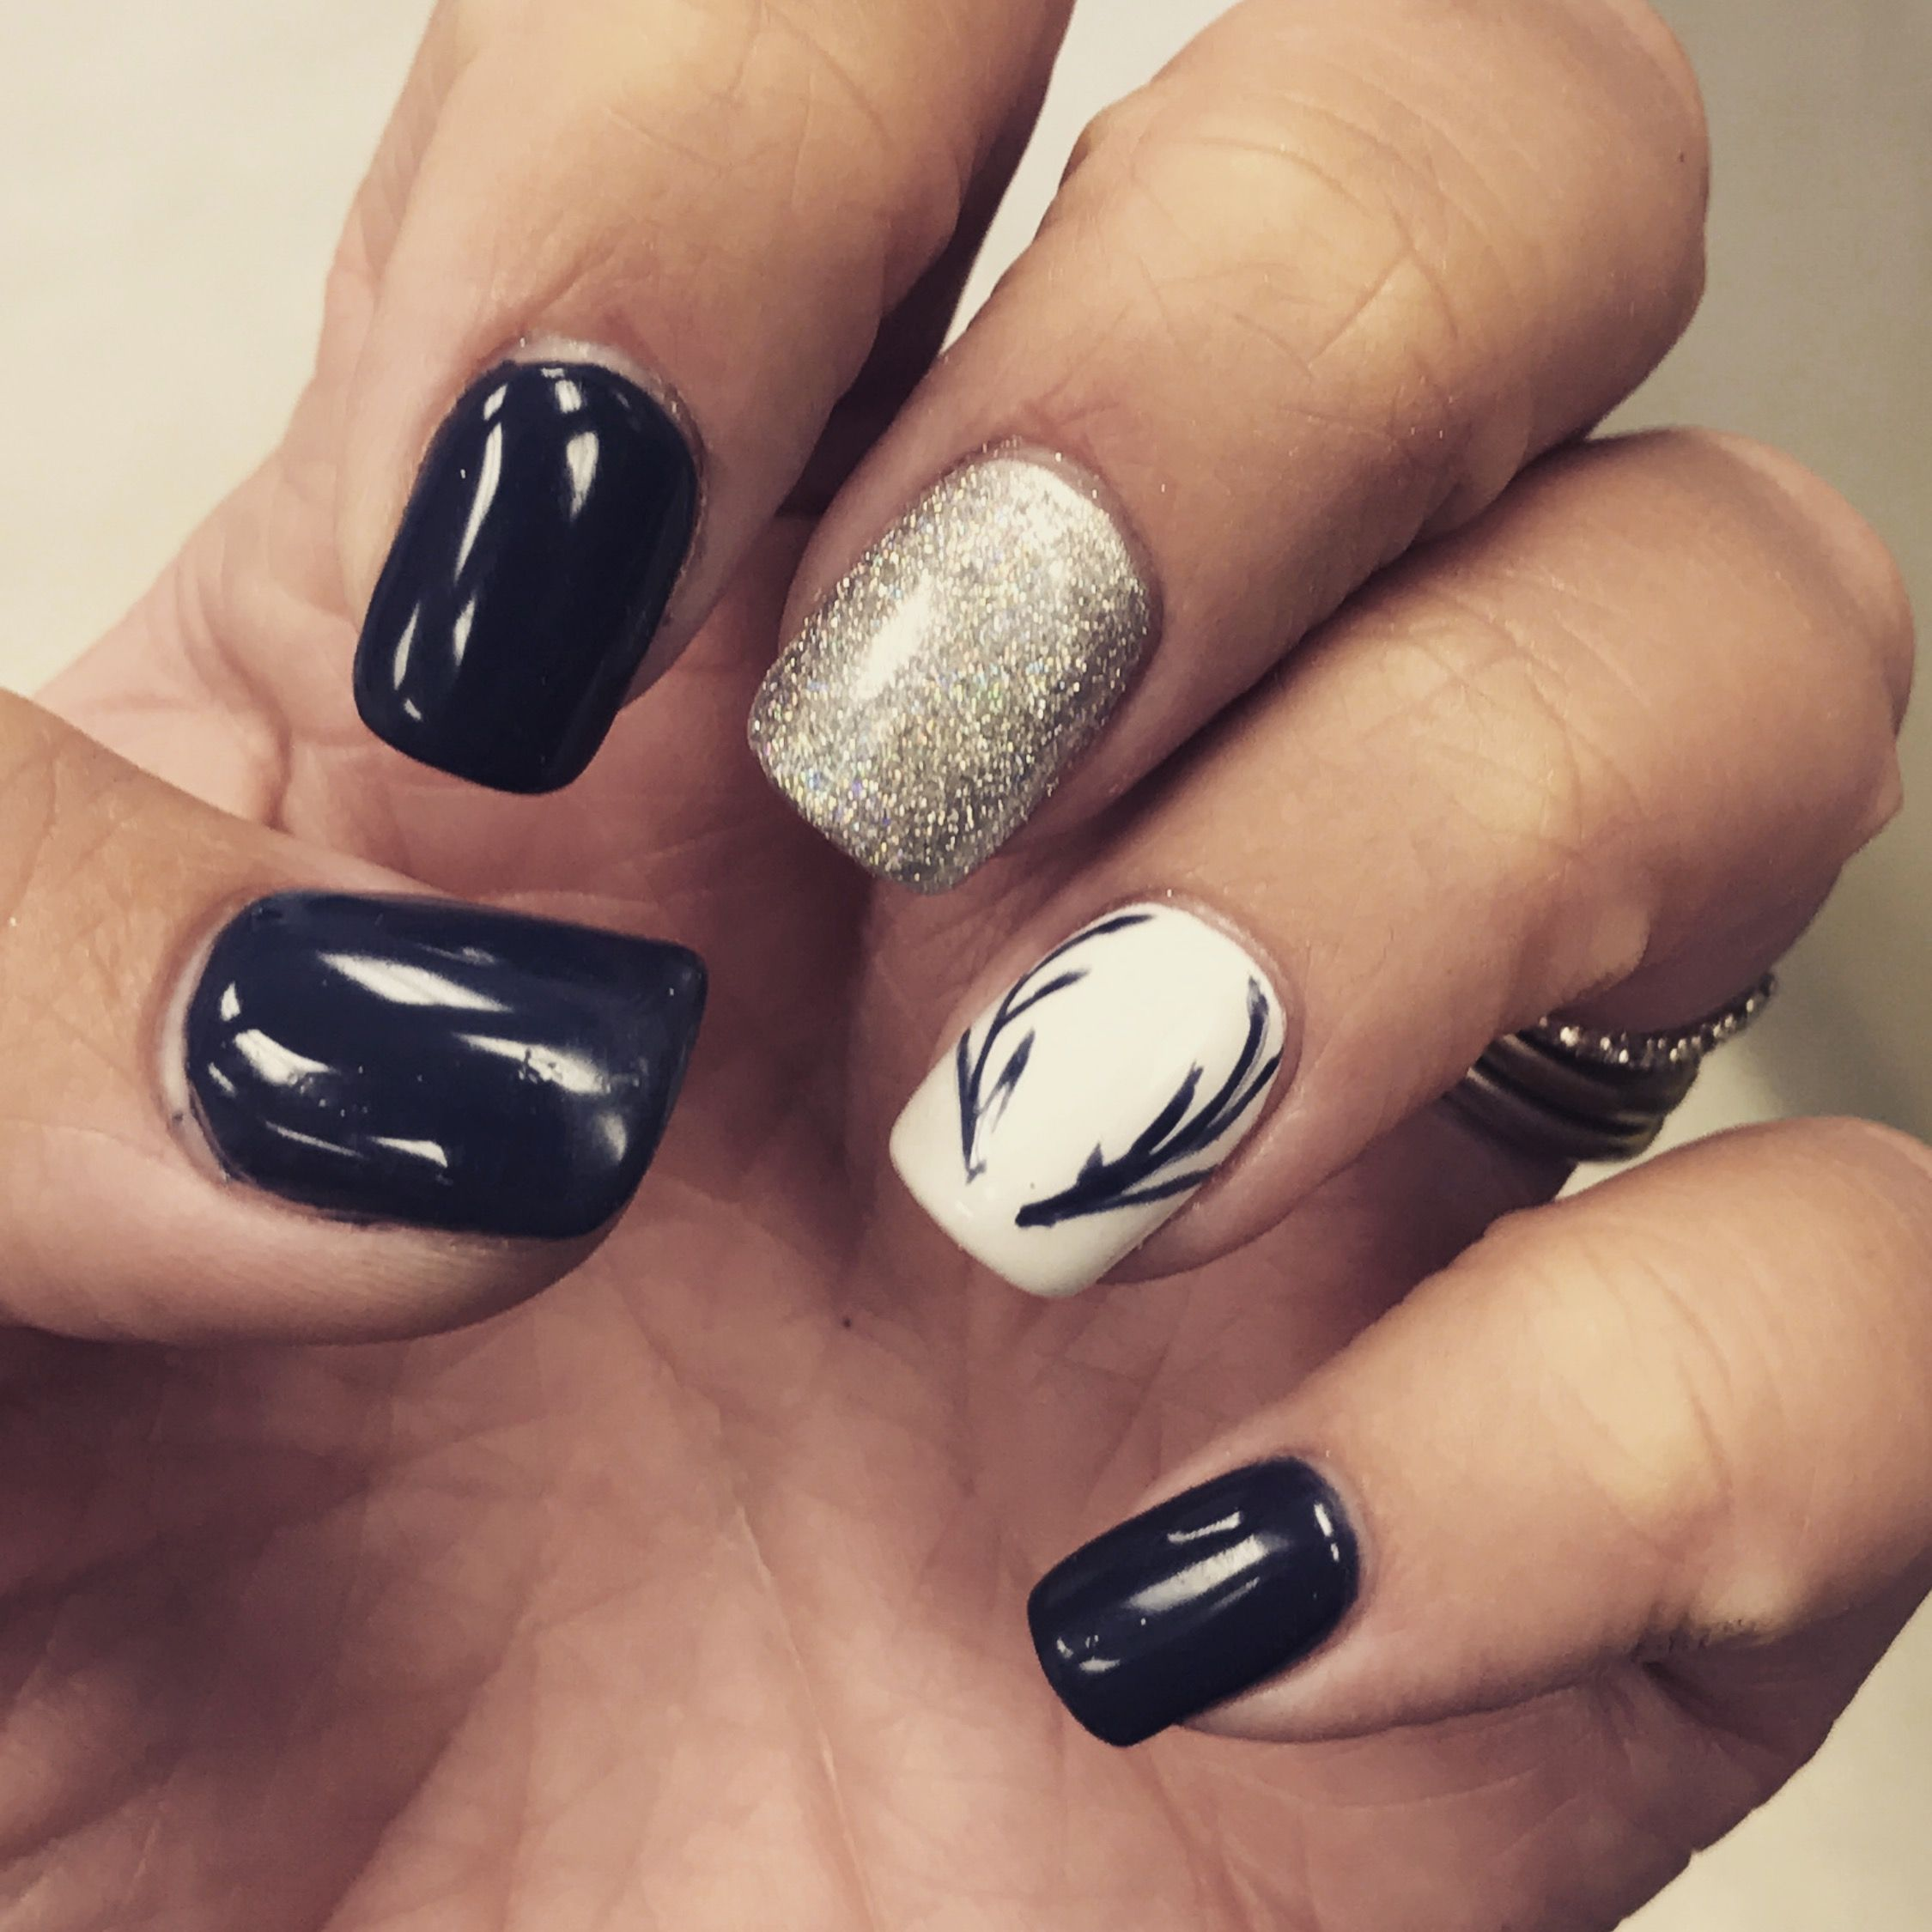 Pin by Melissa Meyers on nails | Pinterest | Winter nail colors ...